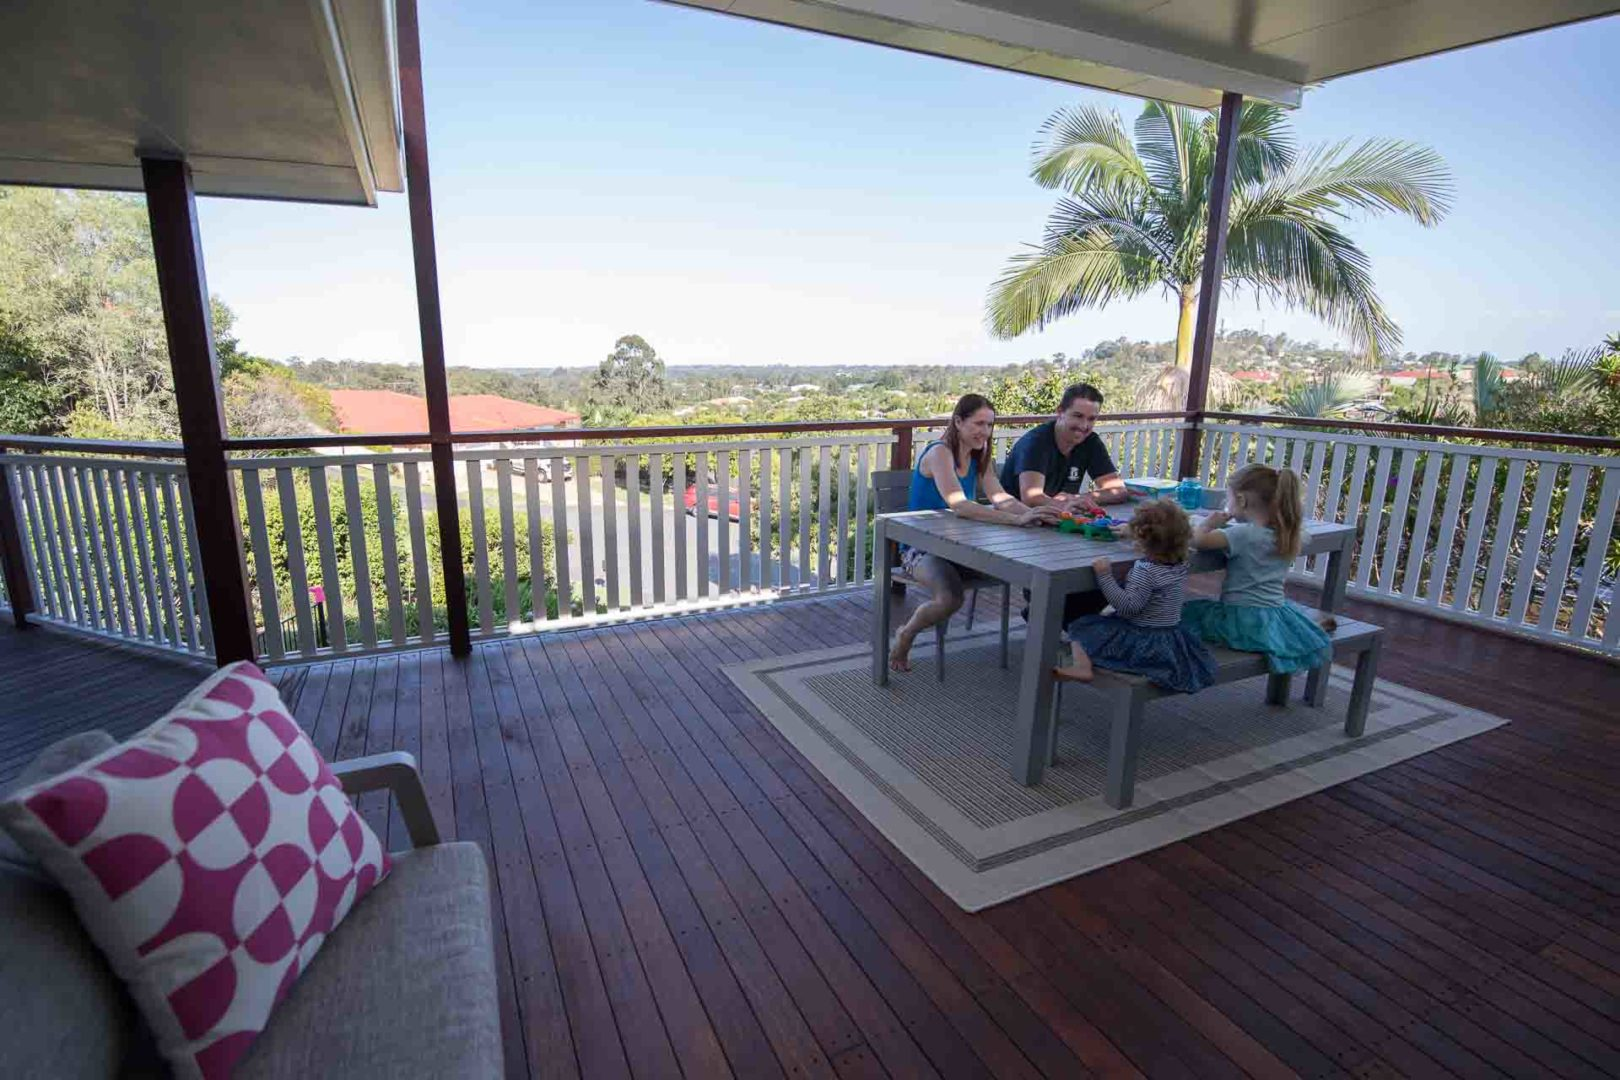 How can I improve my home with timber decking - Timber decking is durable, Australian Outdoor Living.